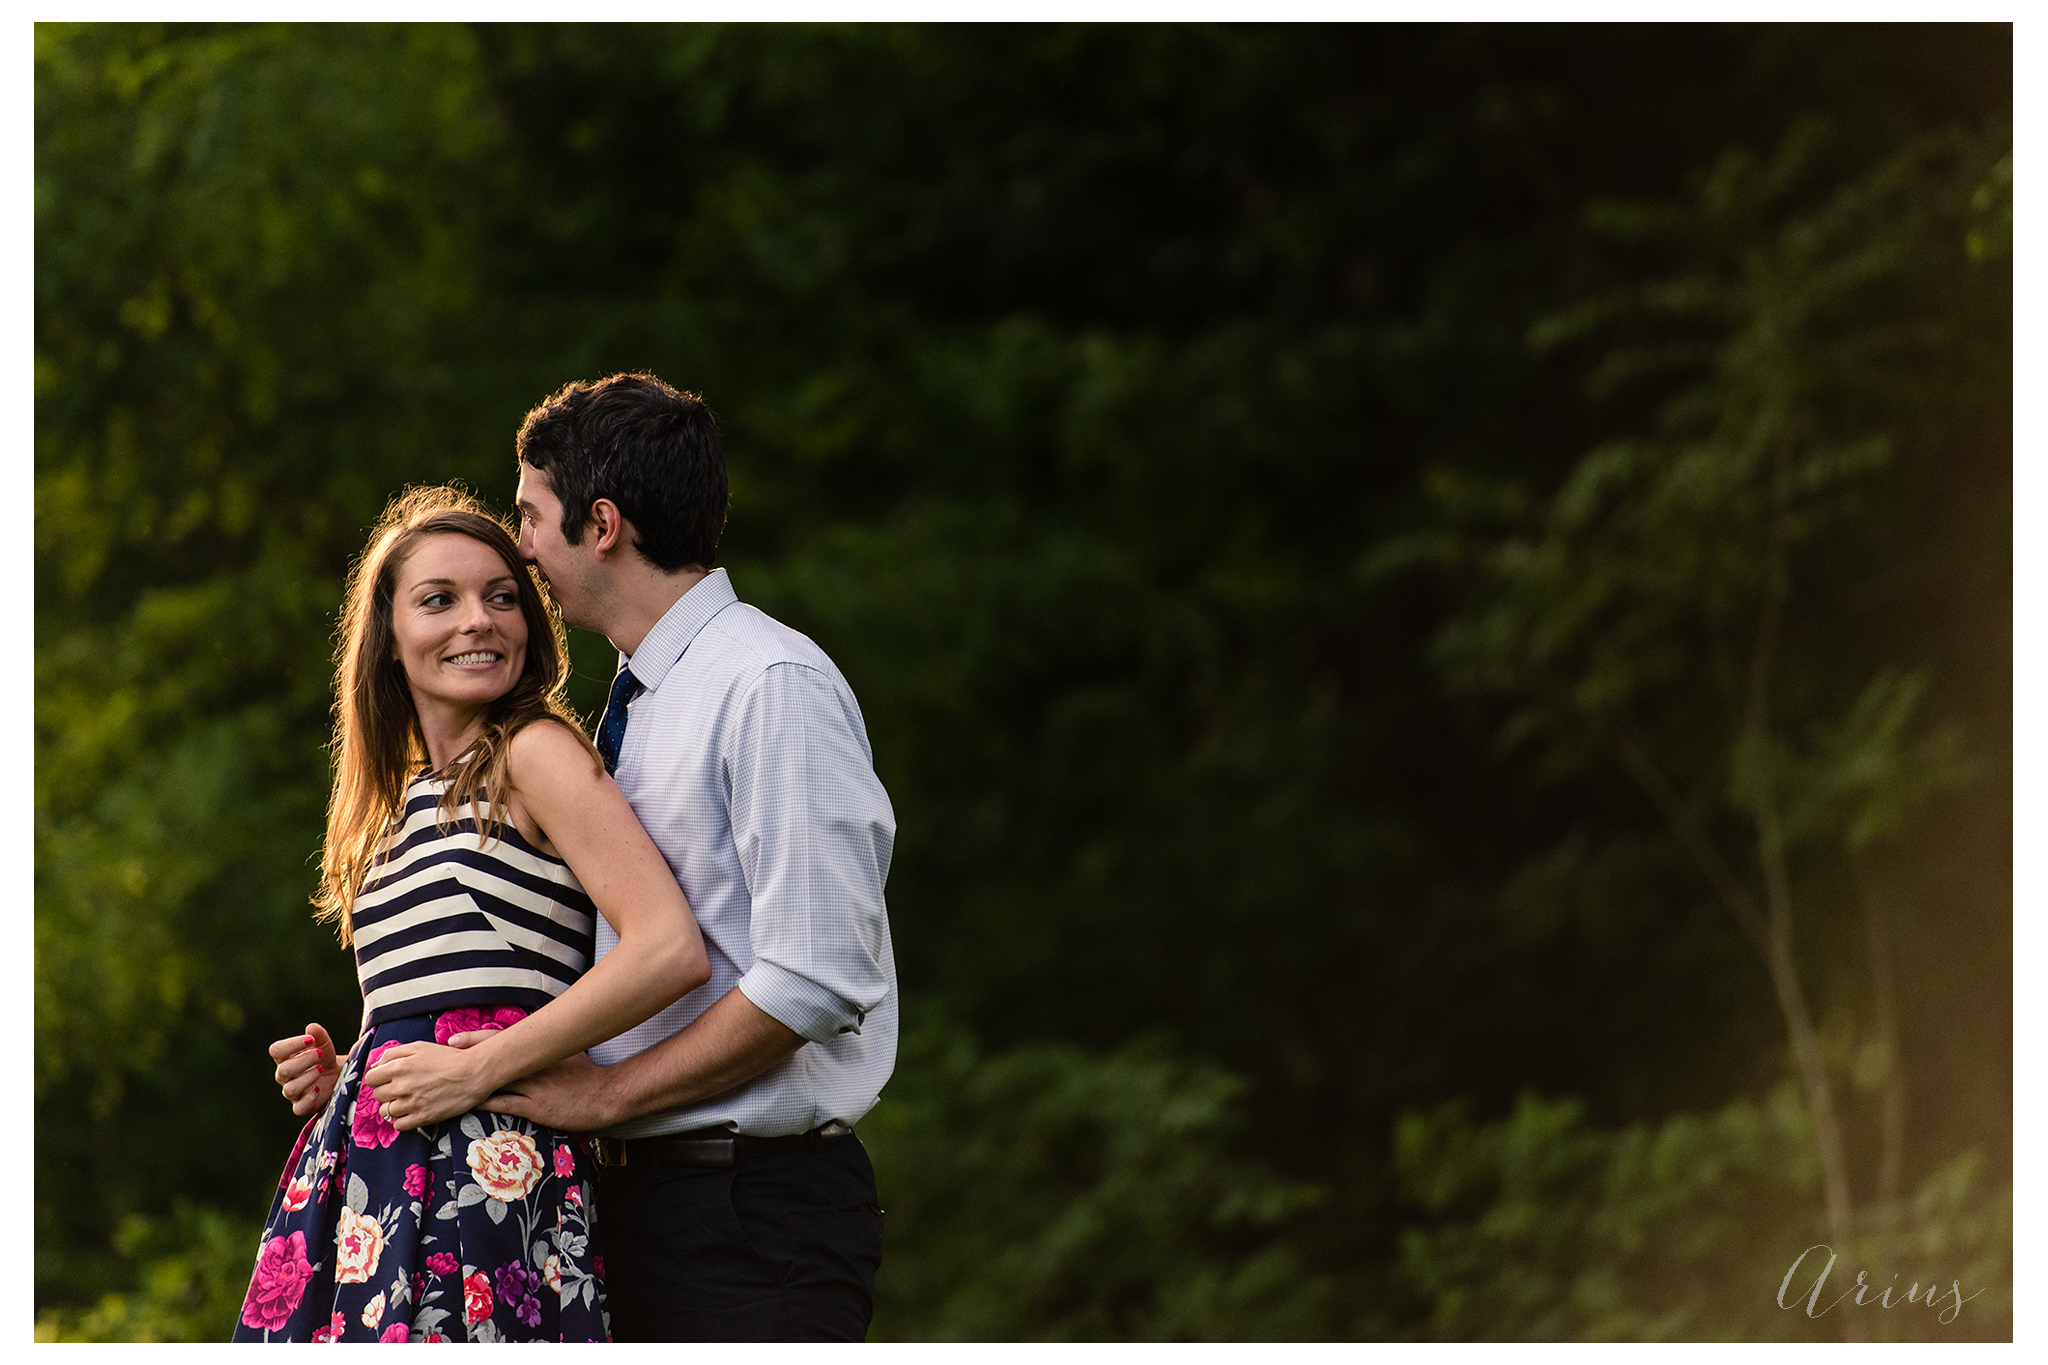 Arius-Photo-Engagement-Hudson-Valley-NY-MT.png